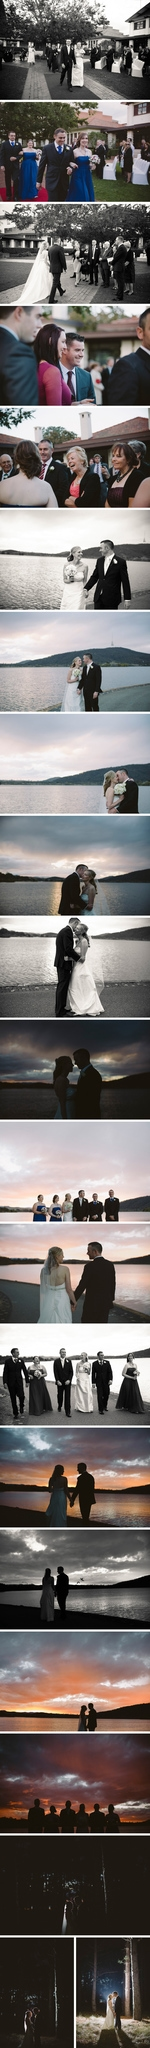 Canberra Classic Wedding Photos